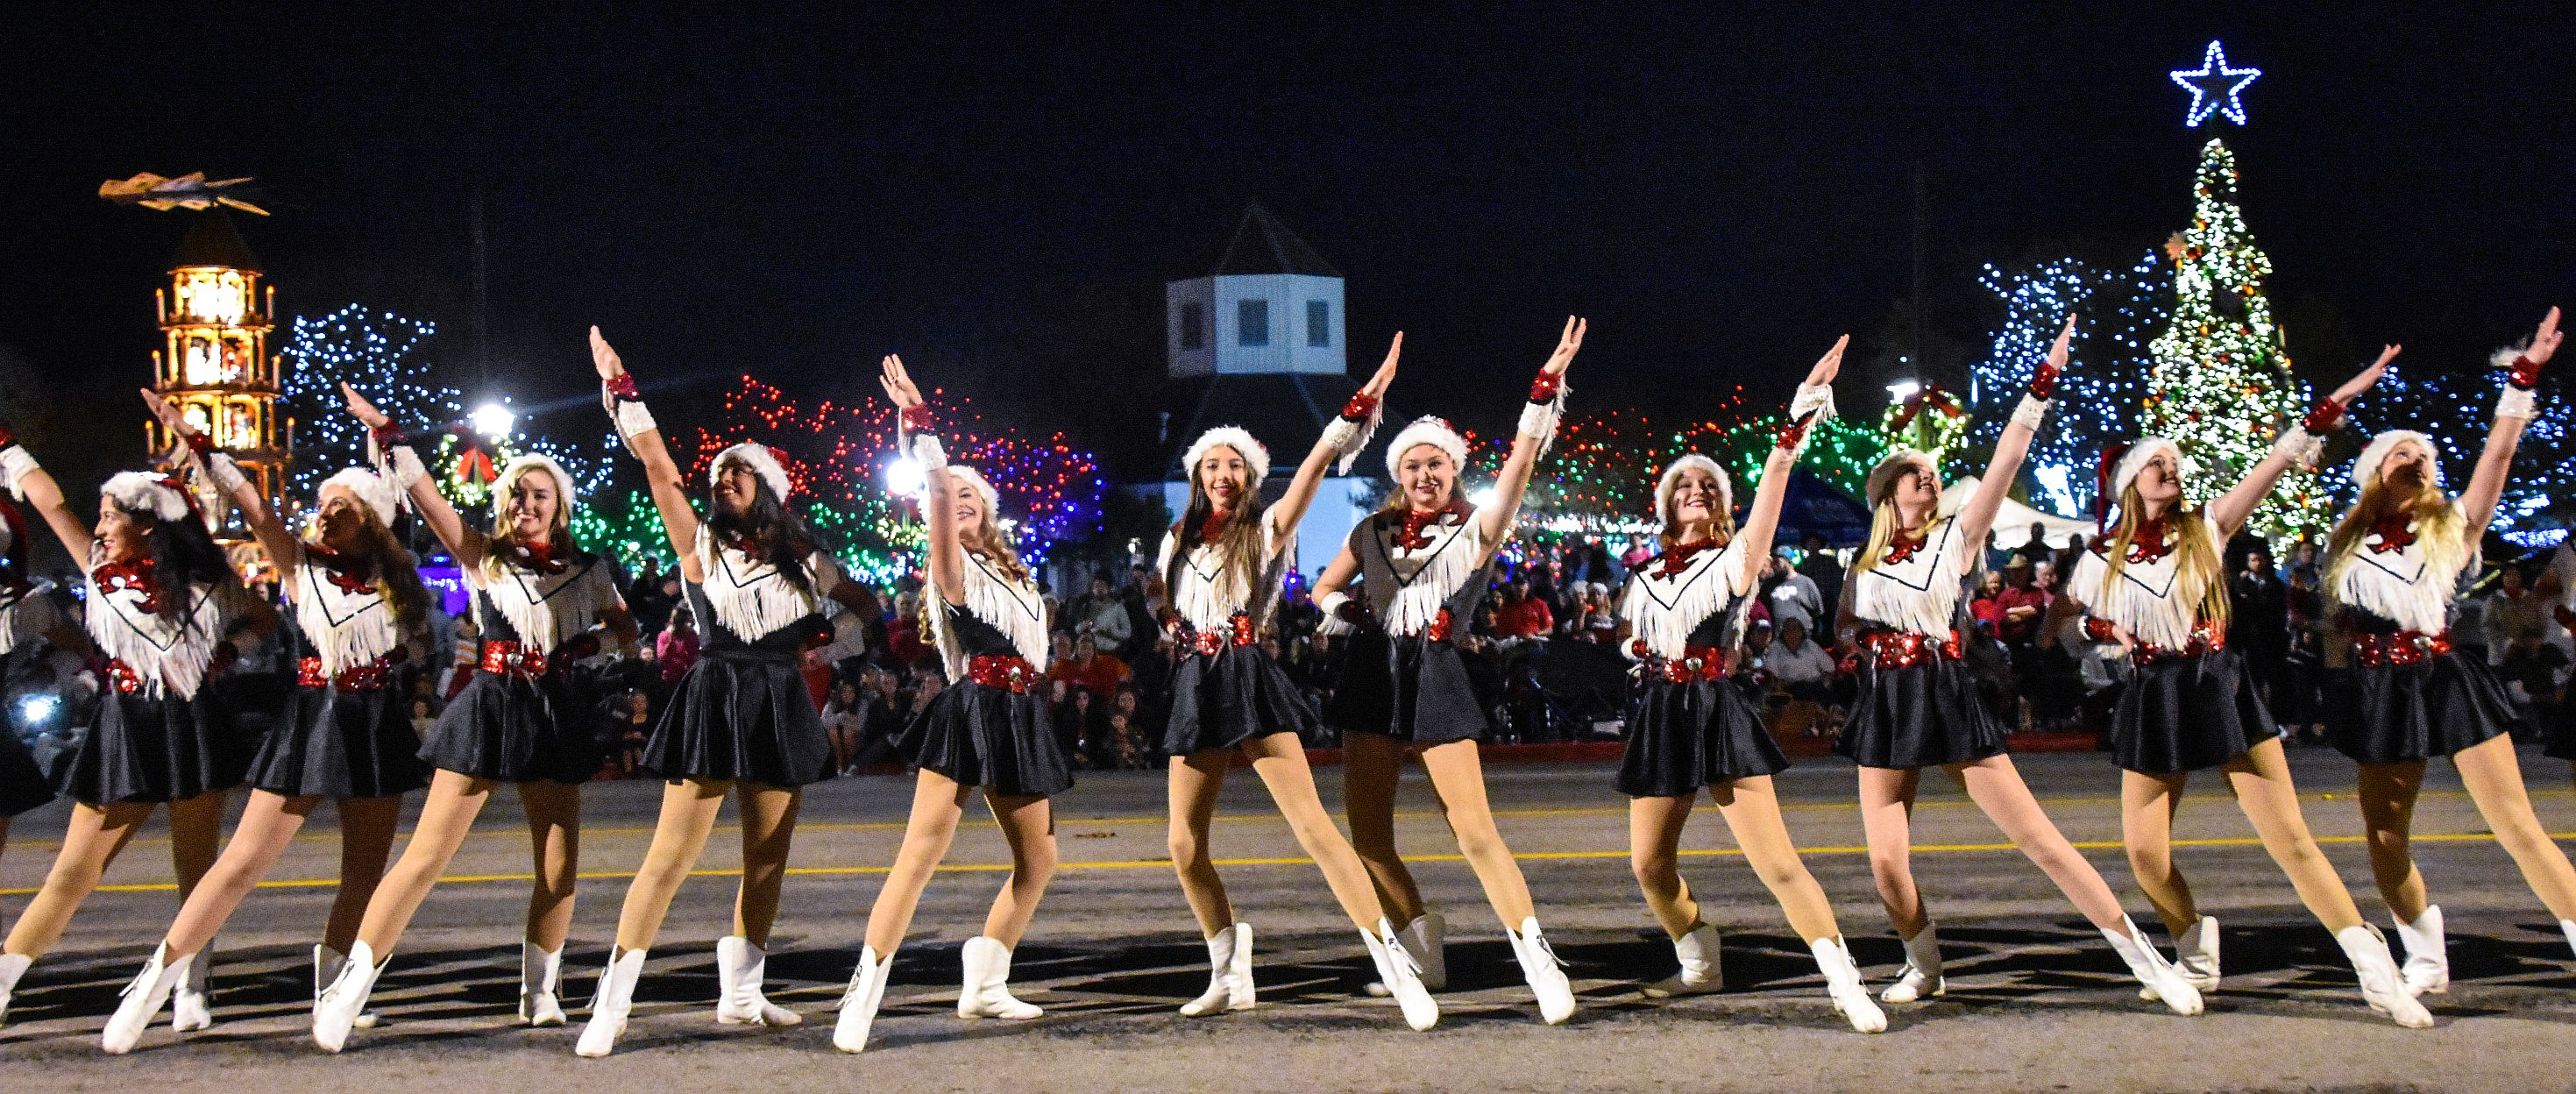 Fredericksburg Tx Christmas Parade 2019 Light The Night Christmas Parade | Fredericksburg Chamber | TX